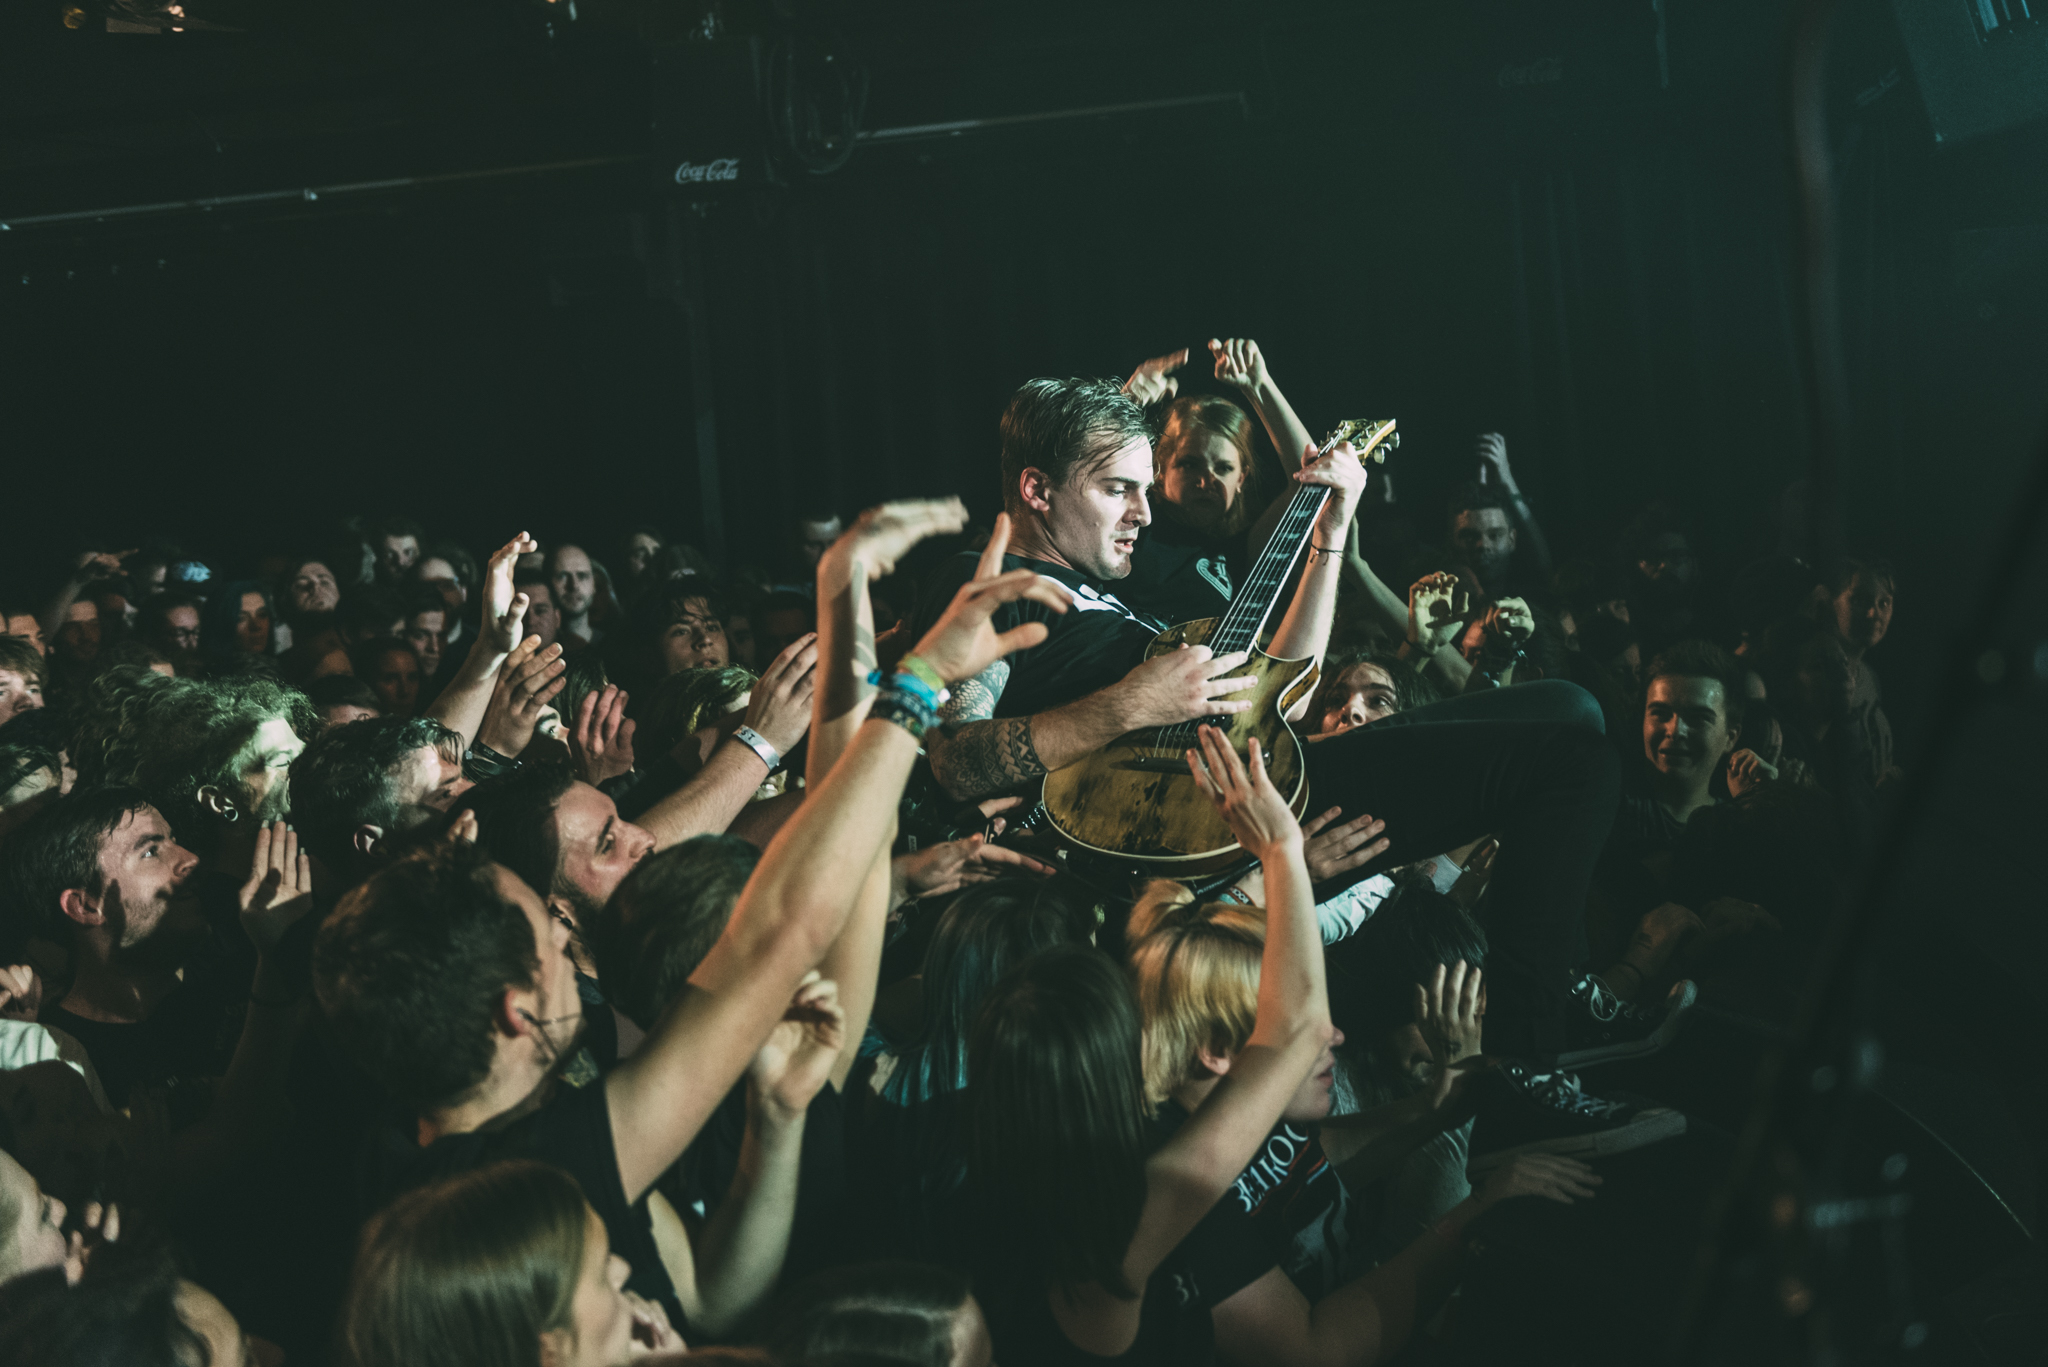 20161116-beartooth-7671.jpg